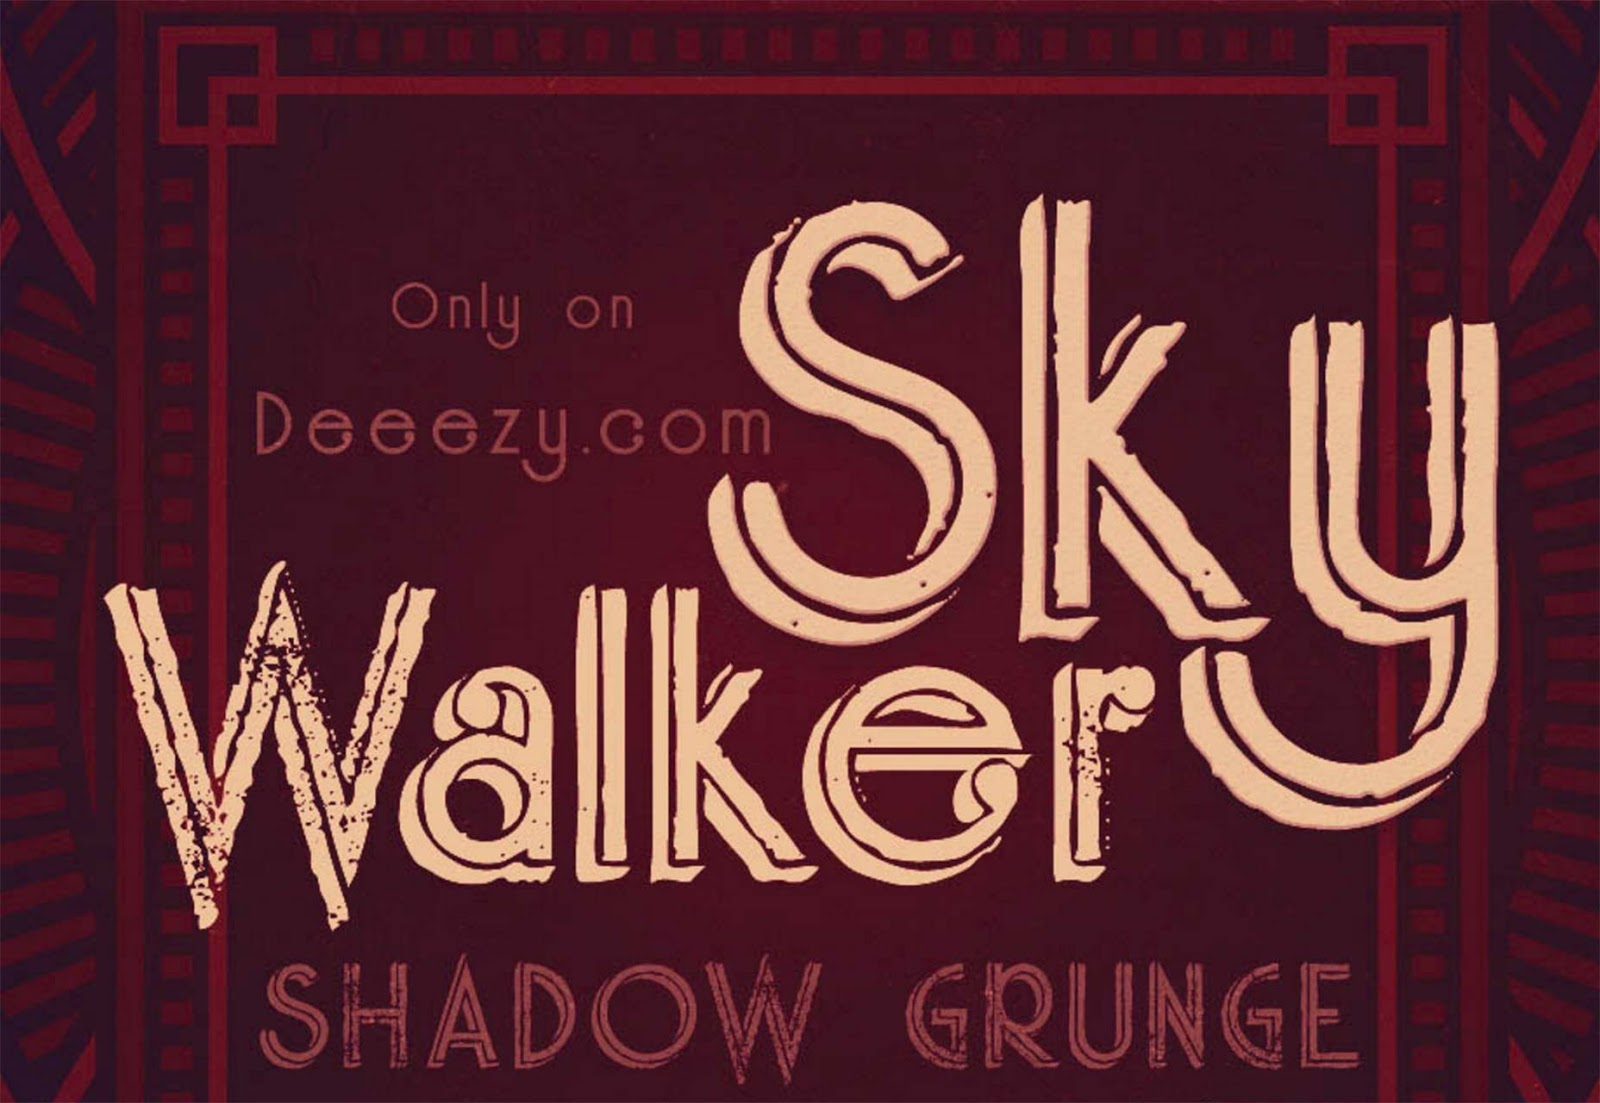 Font Edisi September - Skywalker Shadow Grunge Font